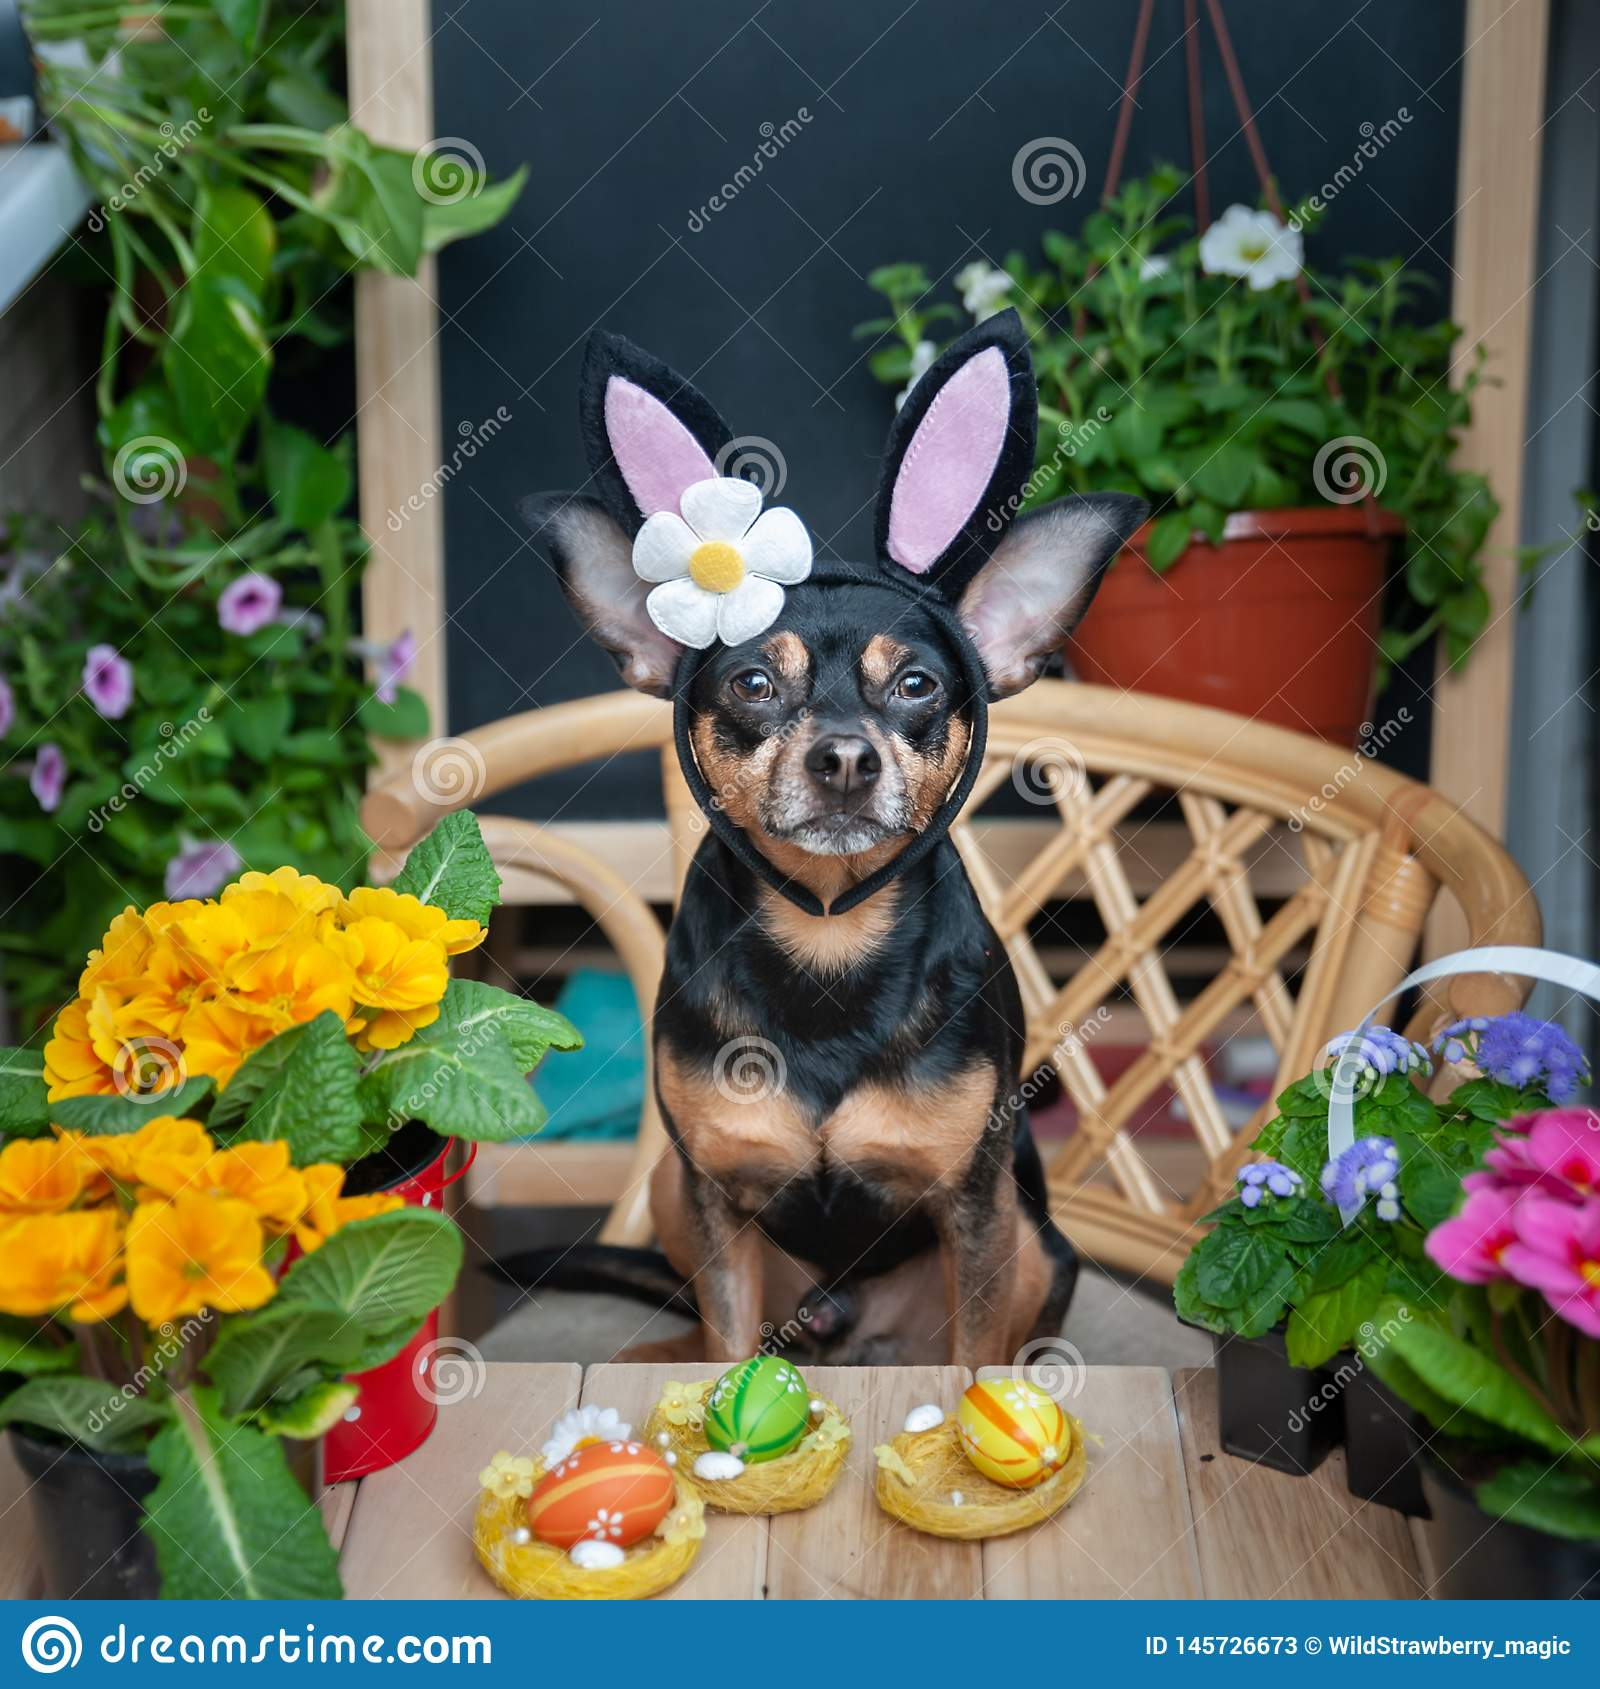 Dog dressed as an Easter bunny in a hat and scarf surrounded by flowers, the theme of spring and Easter